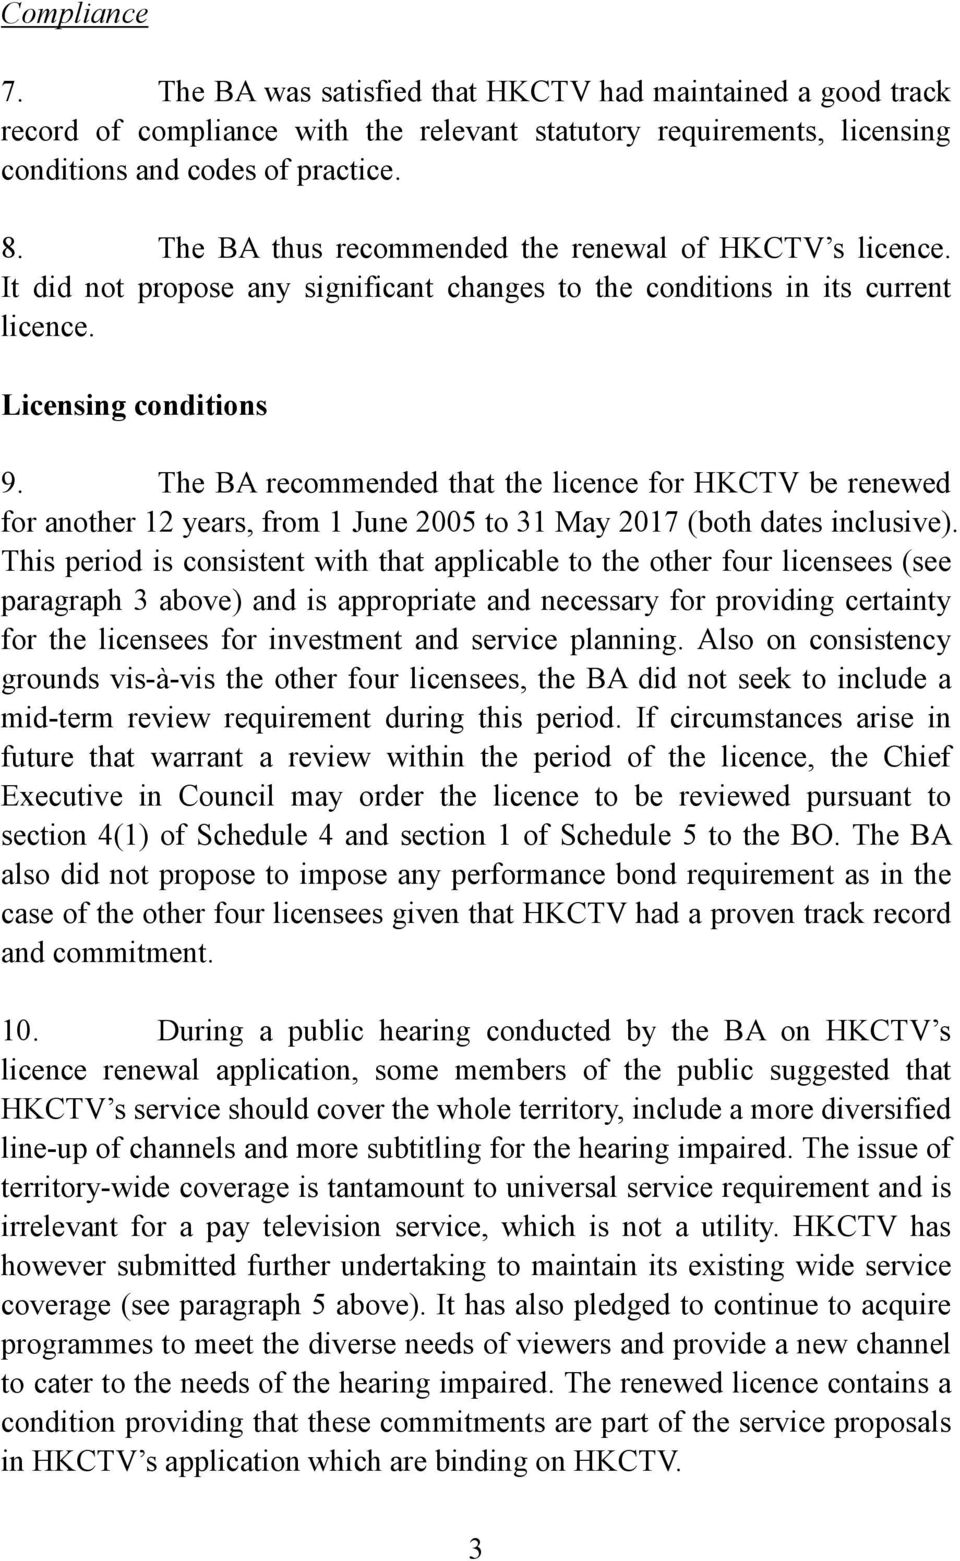 The BA recommended that the licence for HKCTV be renewed for another 12 years, from 1 June 2005 to 31 May 2017 (both dates inclusive).